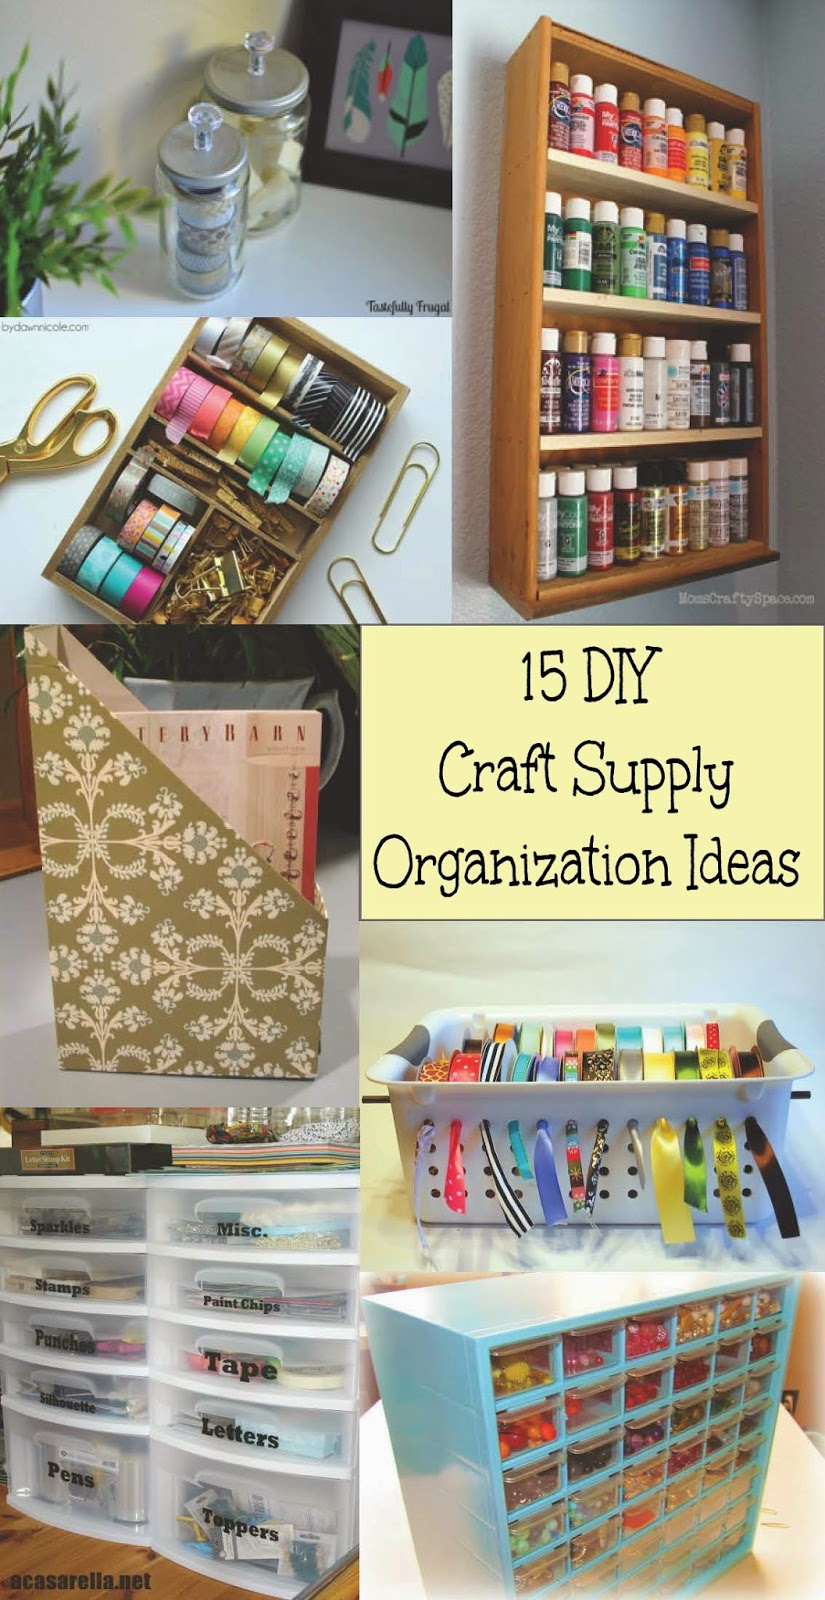 15 diy craft supply organization ideas home crafts by ali for Craft supplies organization ideas